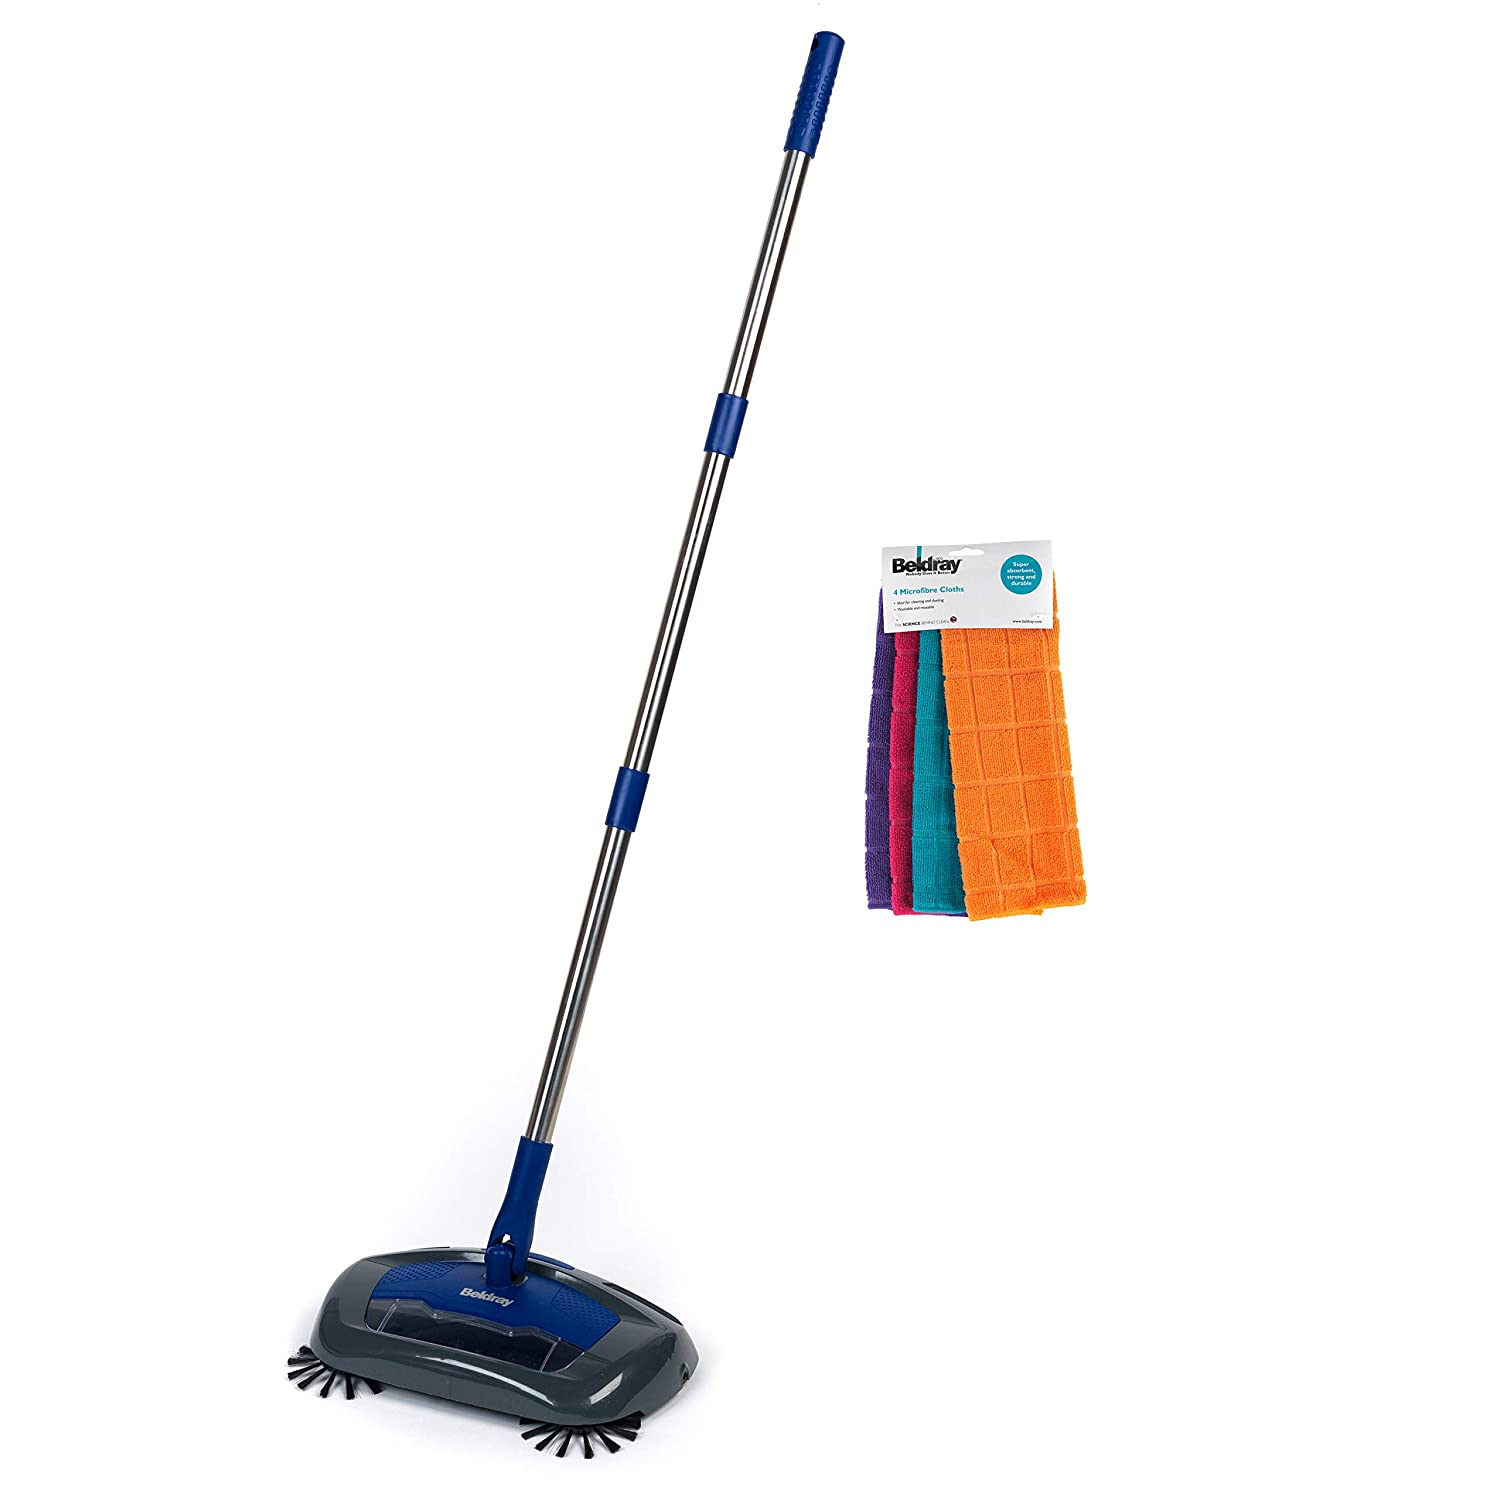 Beldray COMBO-5115 Rechargeable Electric Floor Sweeper with Microfibre Cloths